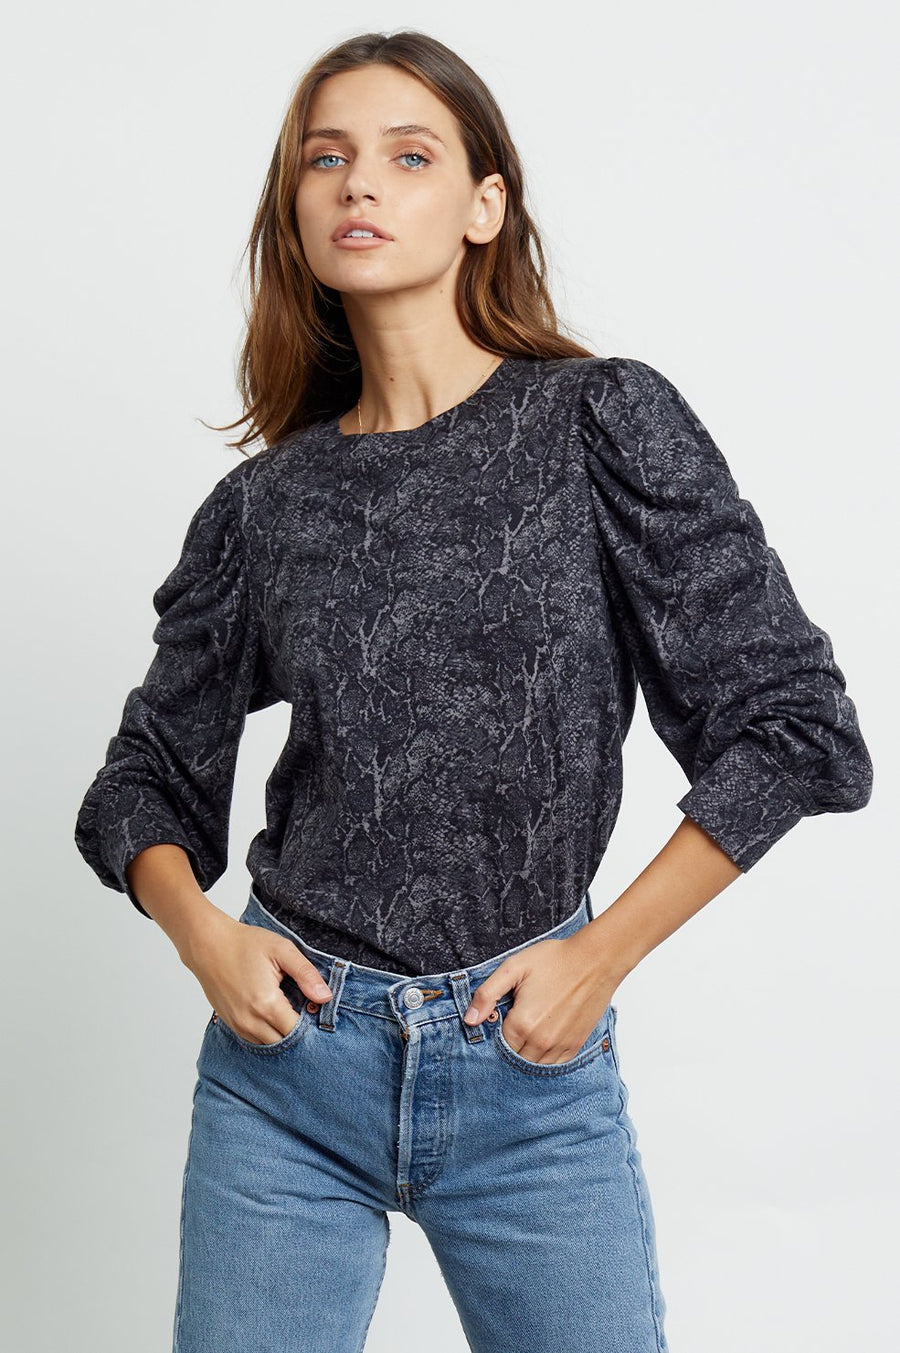 Rails Emilia Top in Charcoal Snakeskin